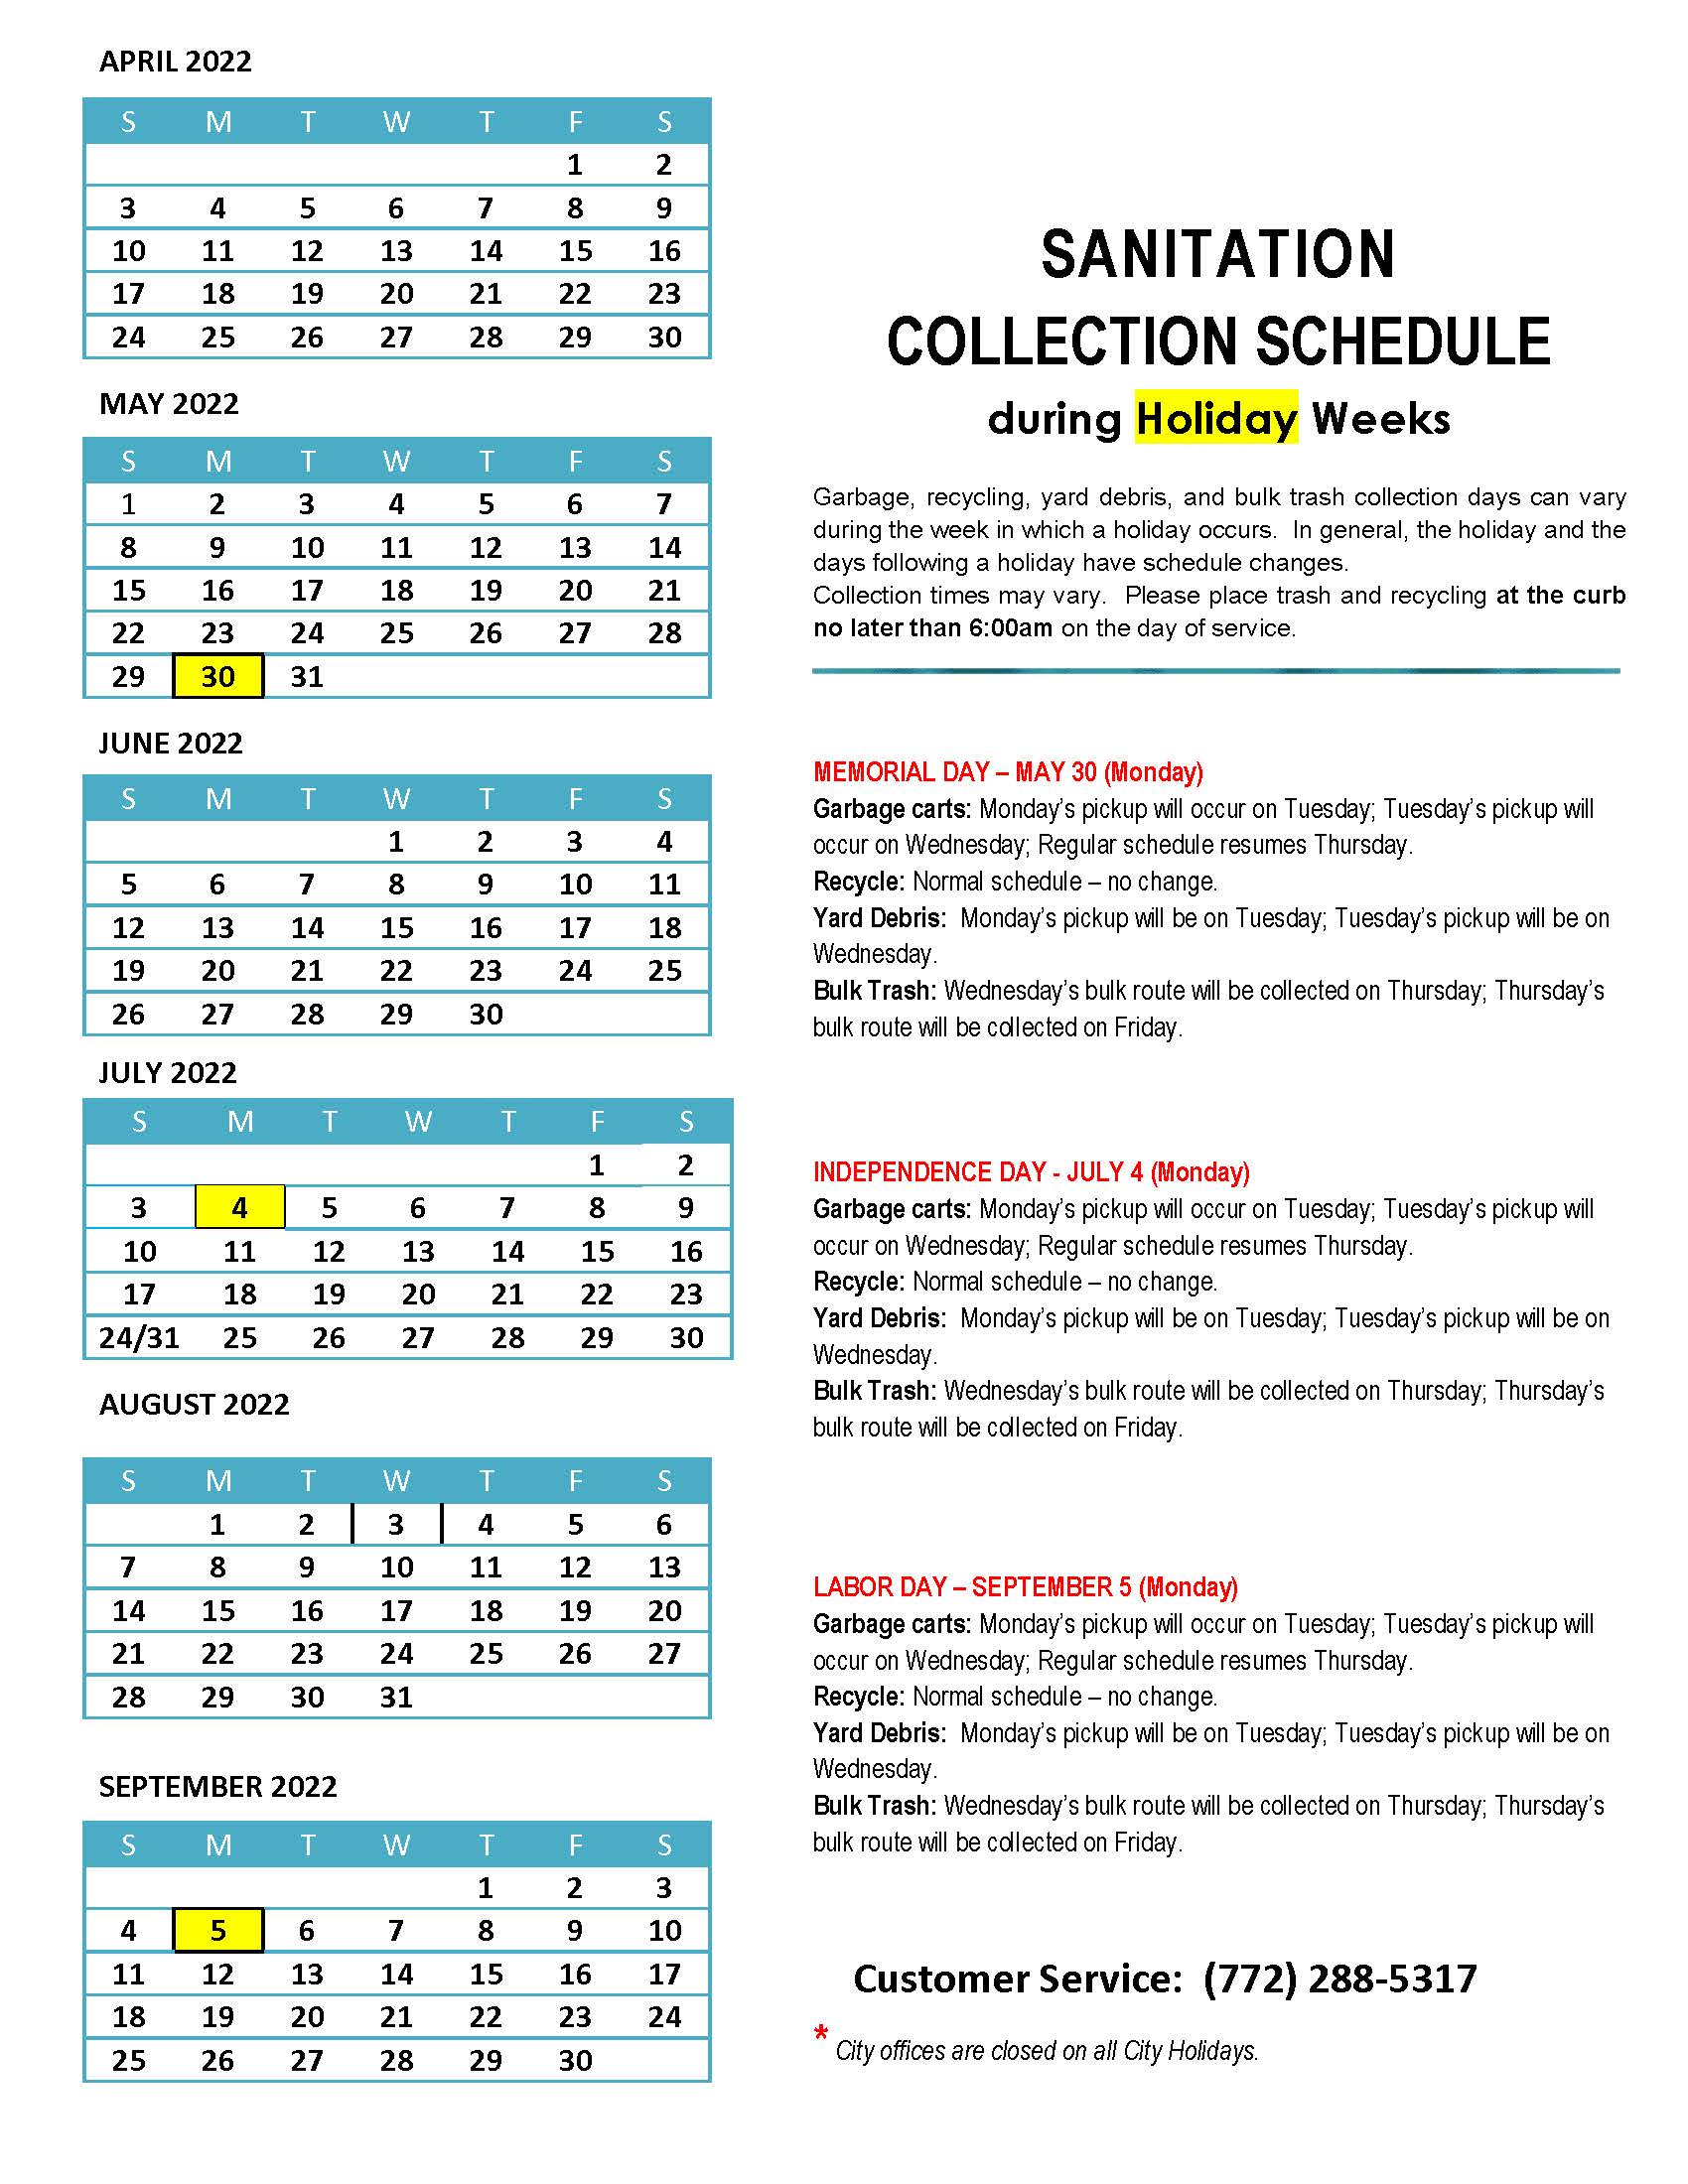 2020-2021 Sanitation Collection Schedule during Holiday Weeks_Page_1 Oct.-March